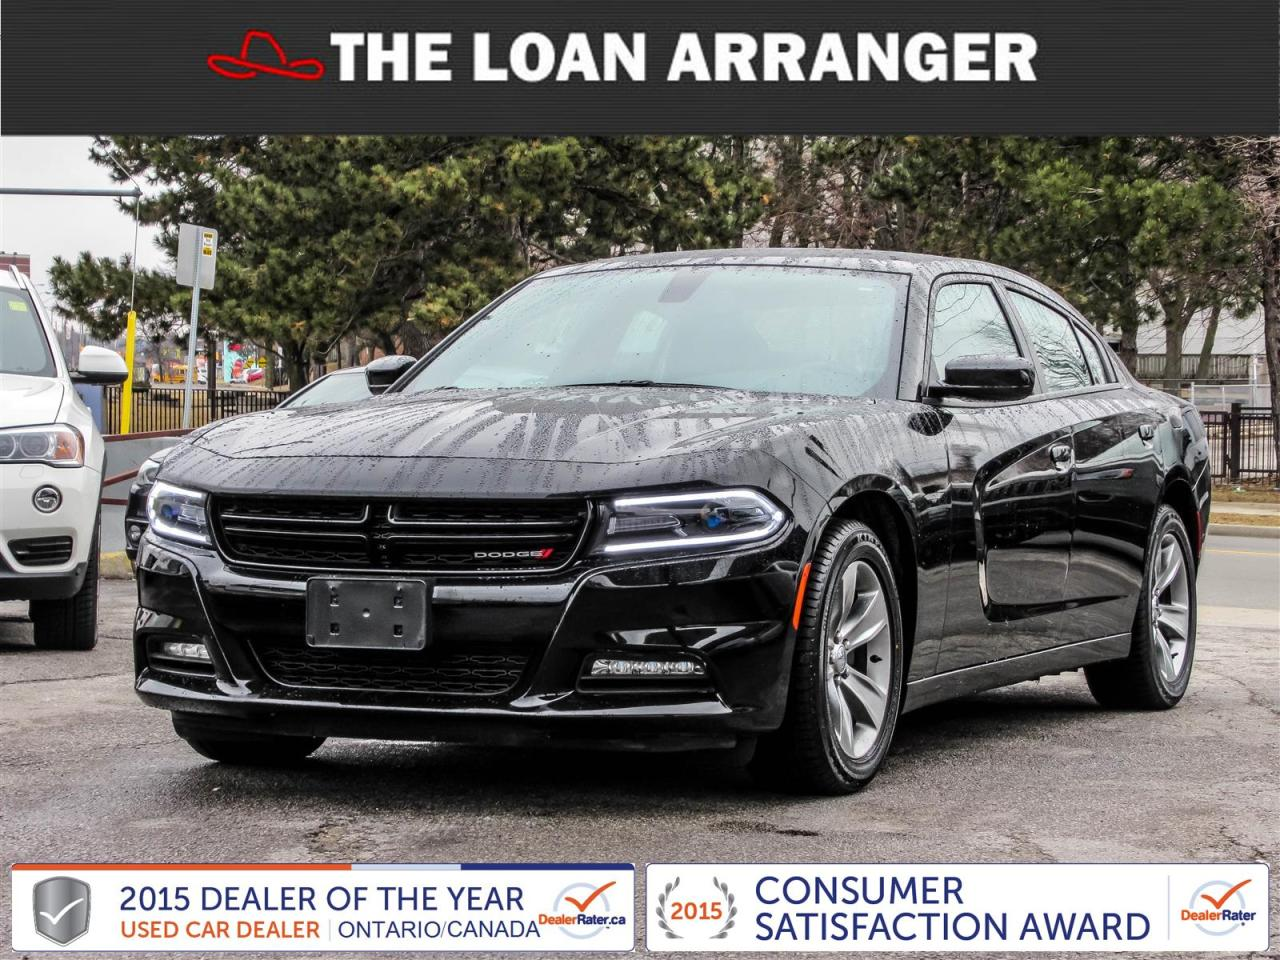 chrysler ram in dodge dealer invoice toronto etobicoke concord sales jeep ontario event view pricing pin an seven s serving is